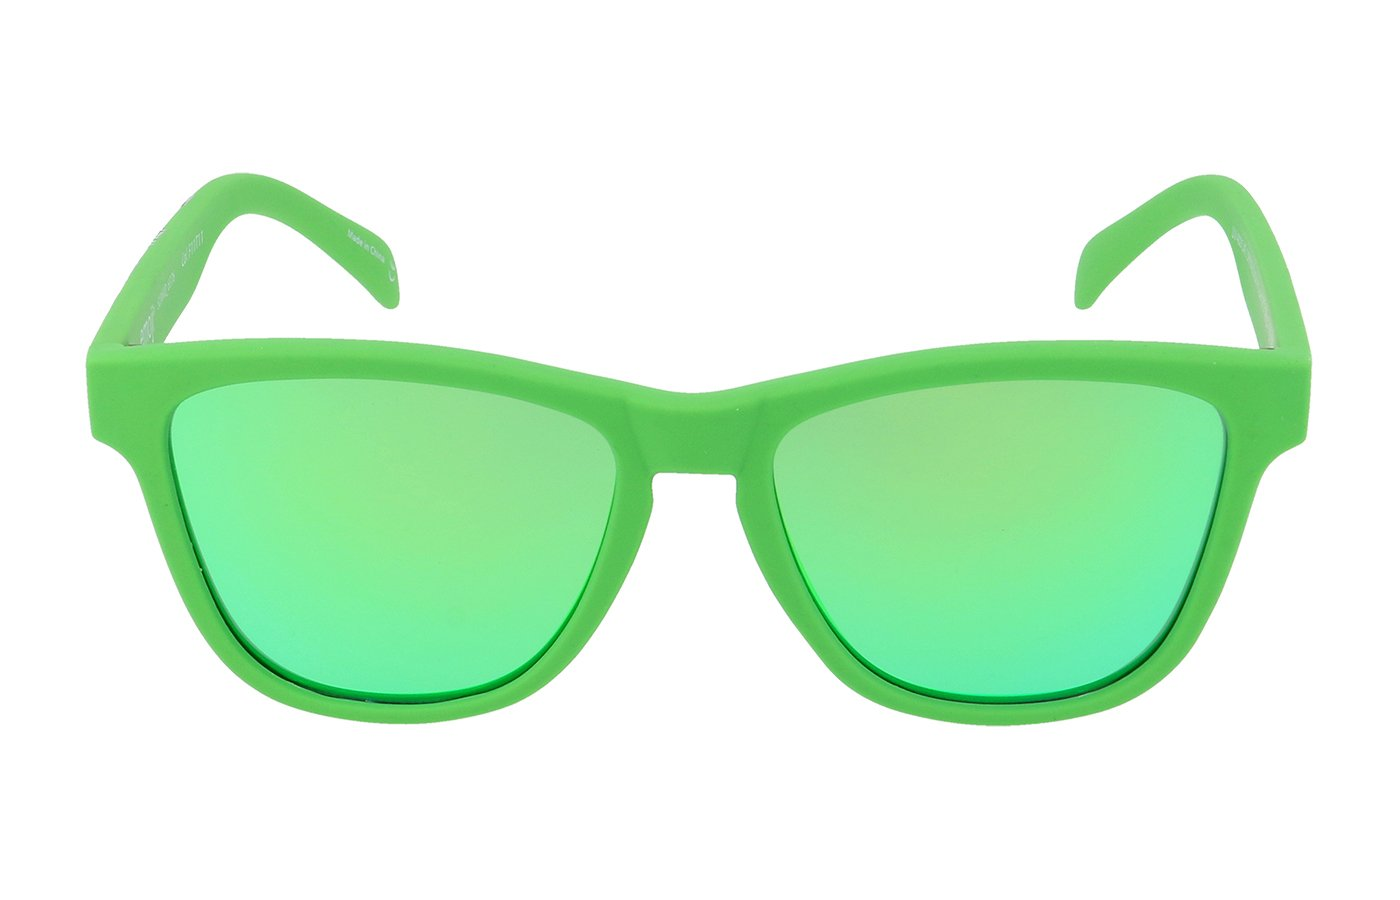 MONKEY GREEN EMOJI SUNGLASSES FOR KIDS